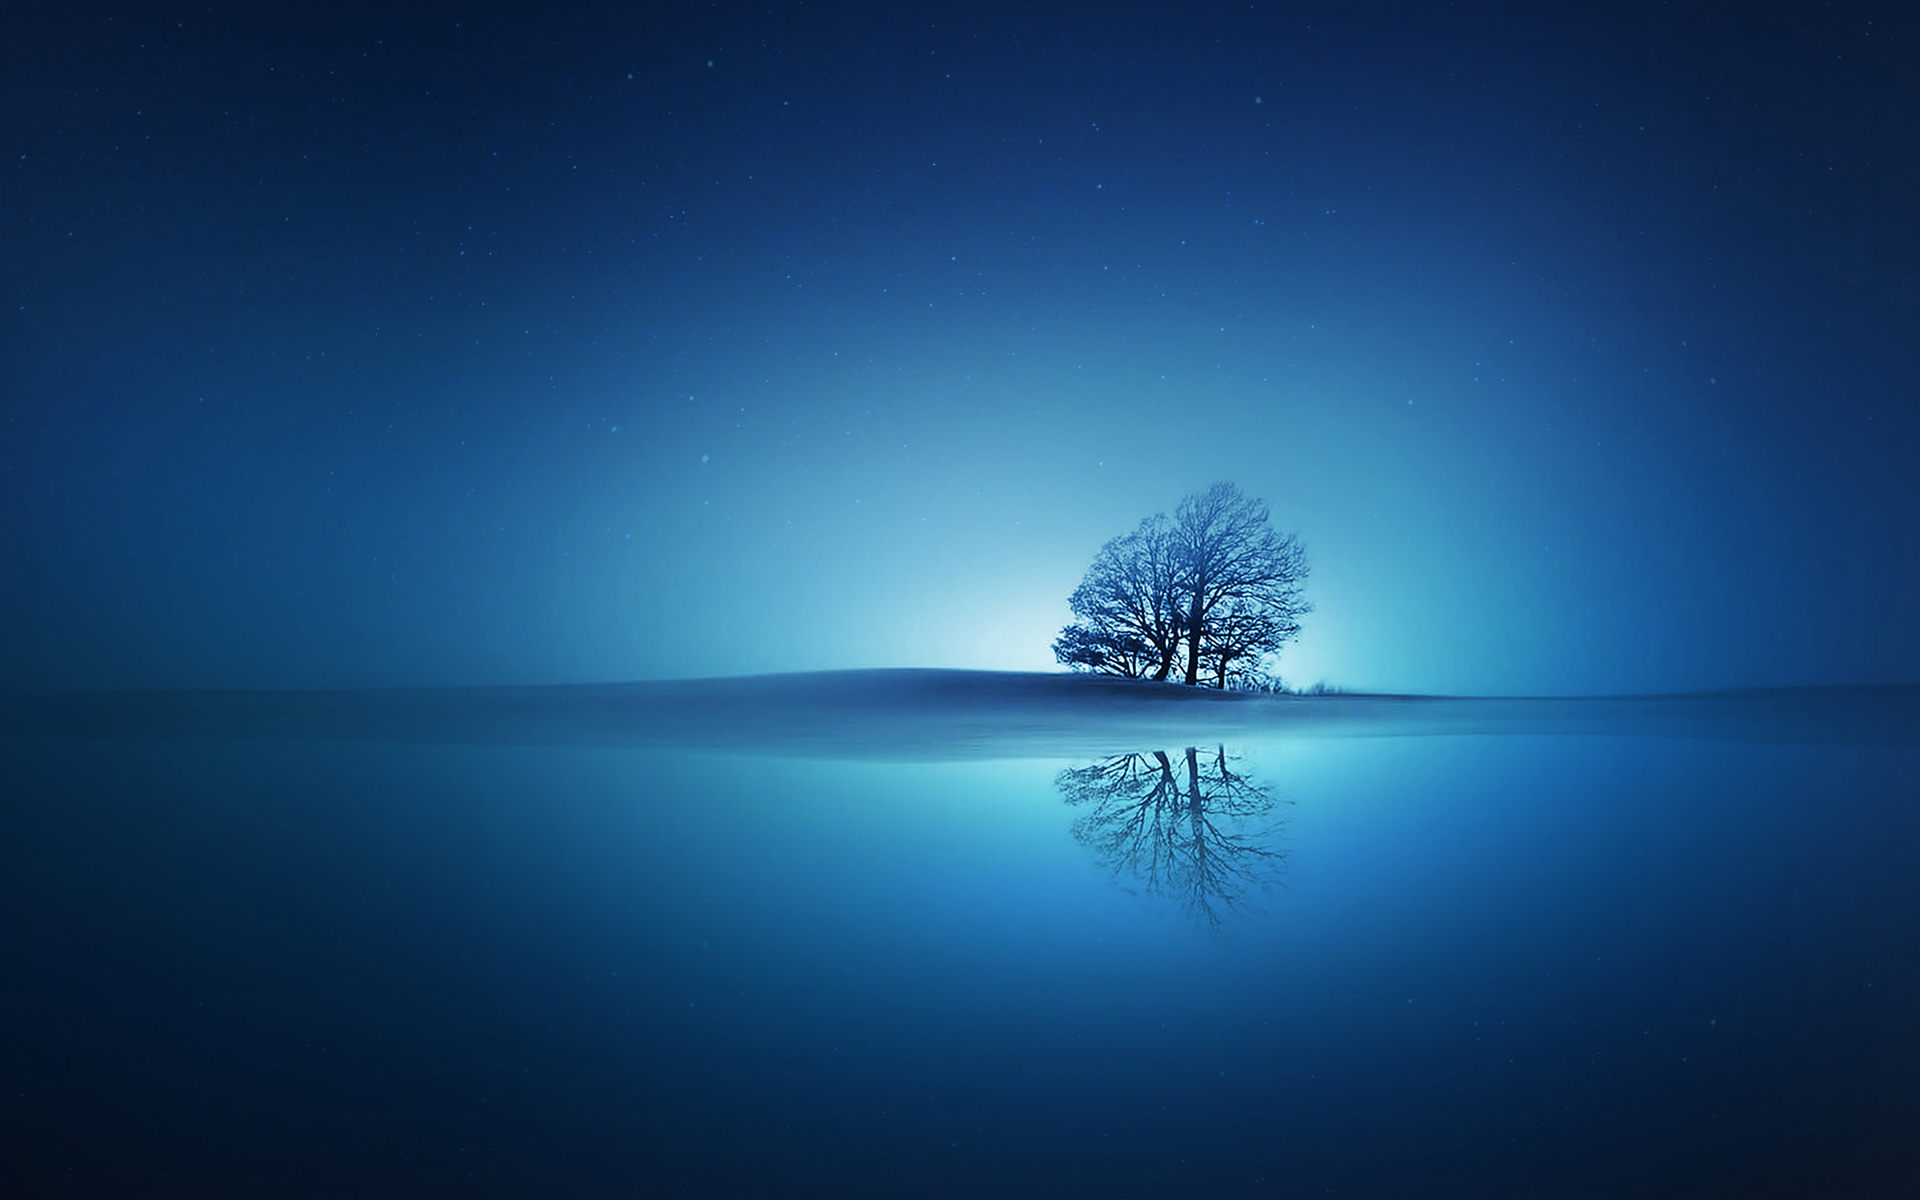 blue reflections wallpapers hd wallpapers